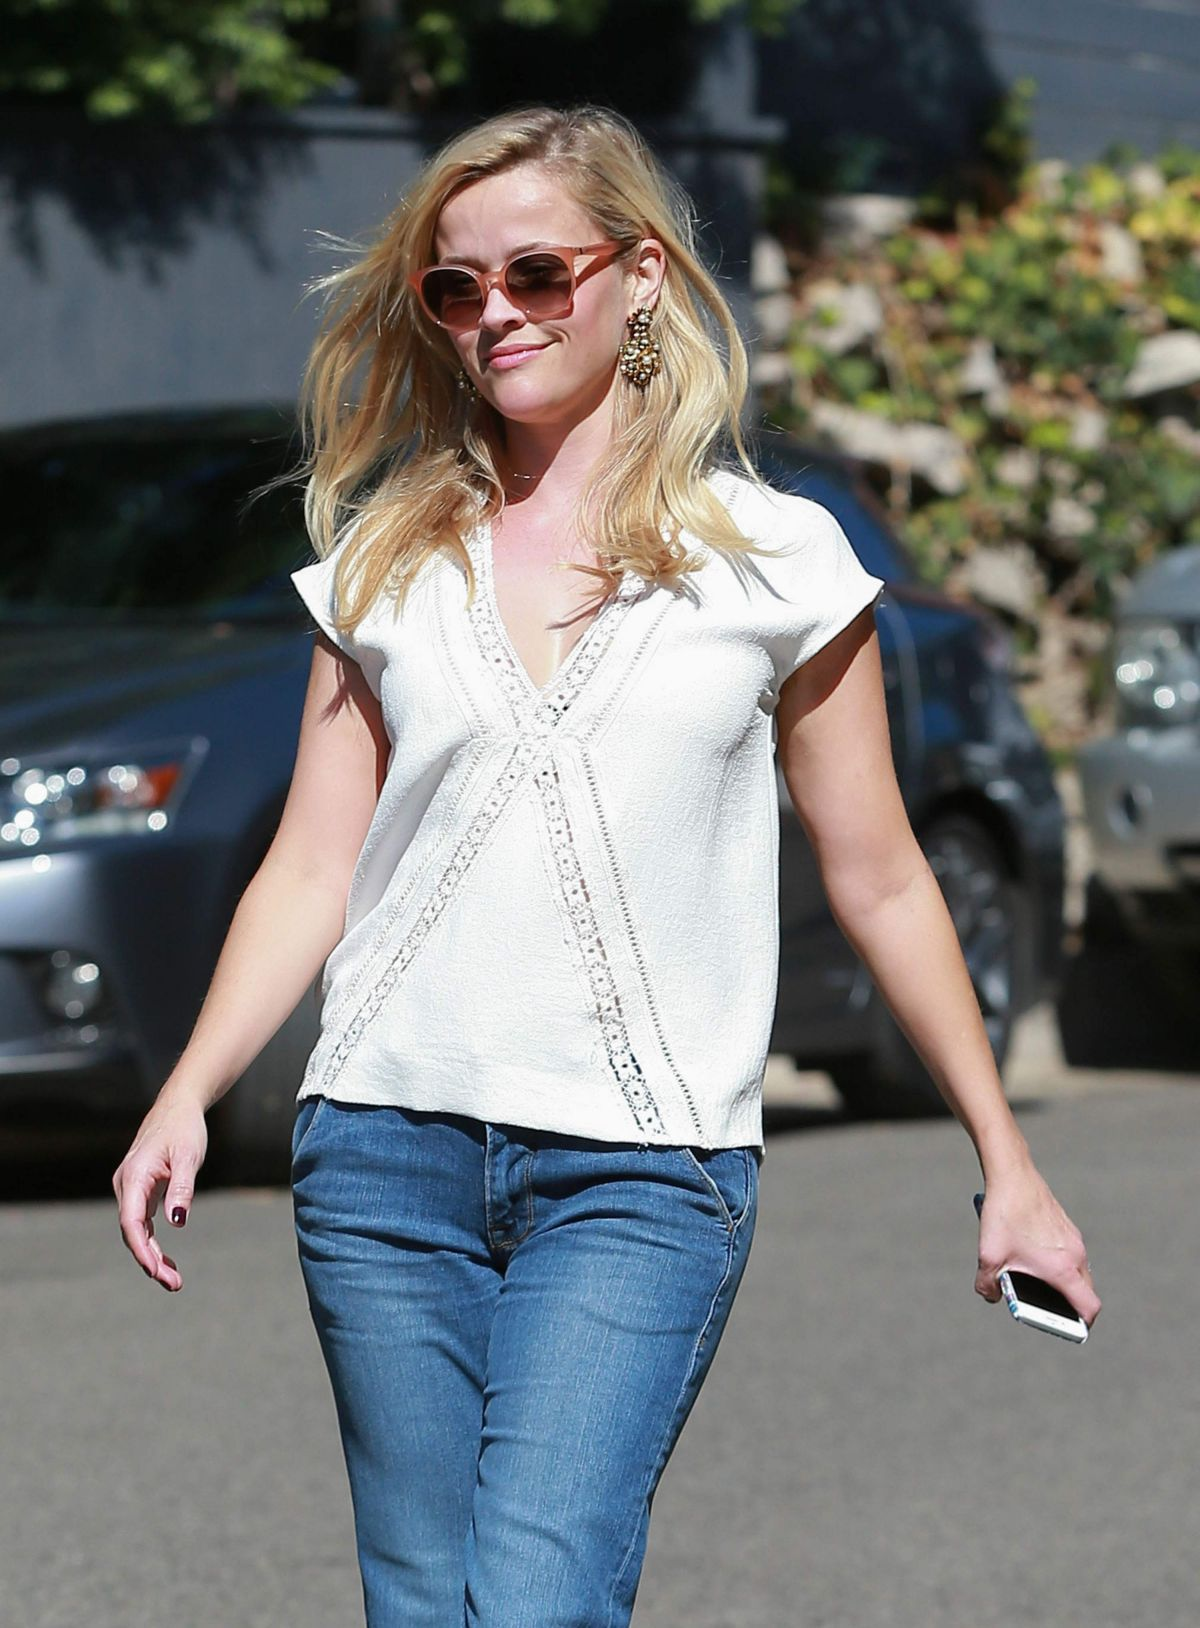 REESE WITHERSPOON Heading to a Friend House in Los Angeles 10/10/2015